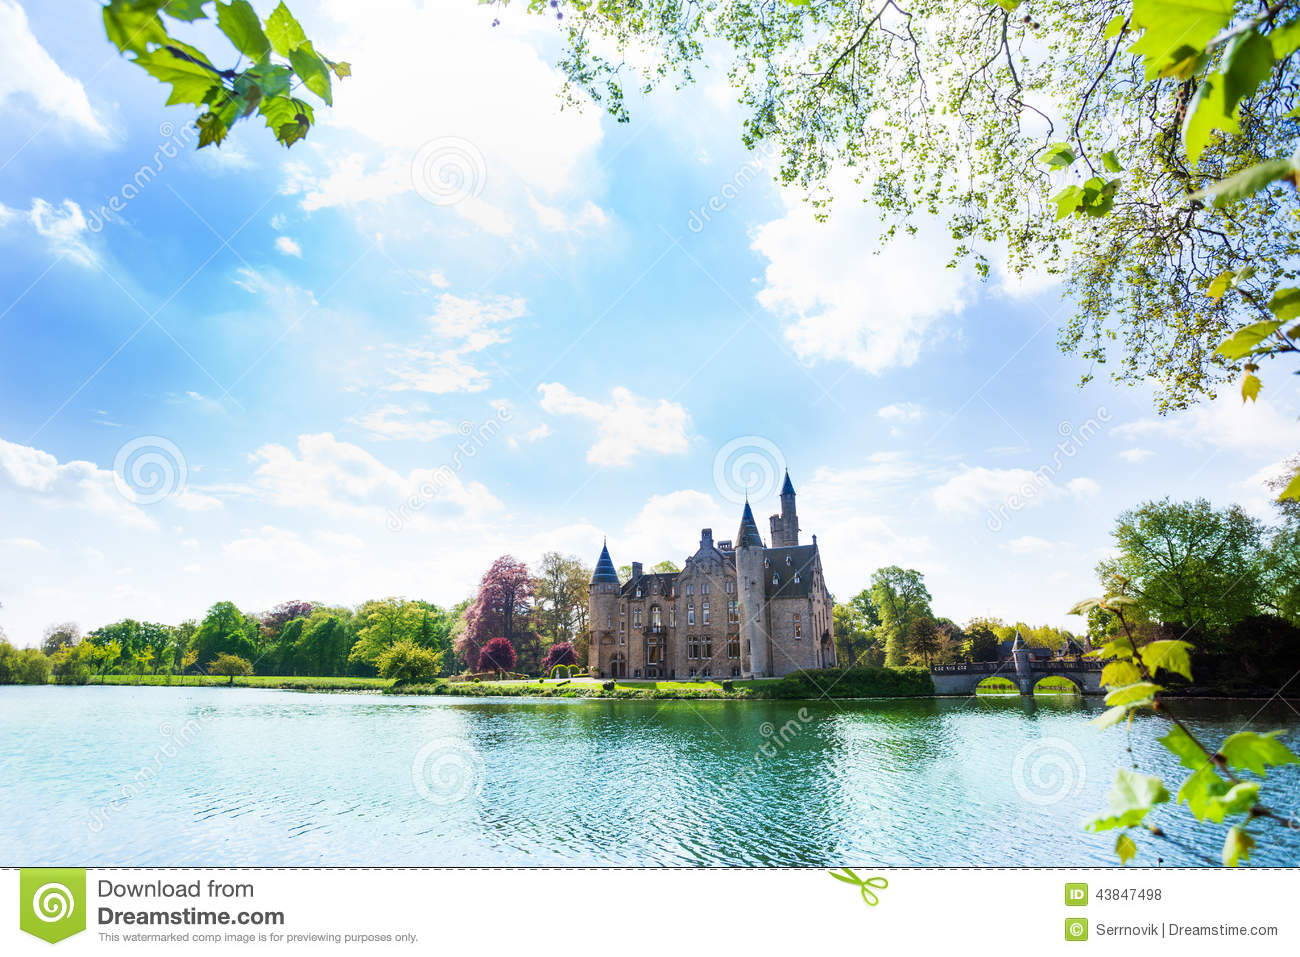 Beautiful view of bornem castle on the river near antwerp in belgium